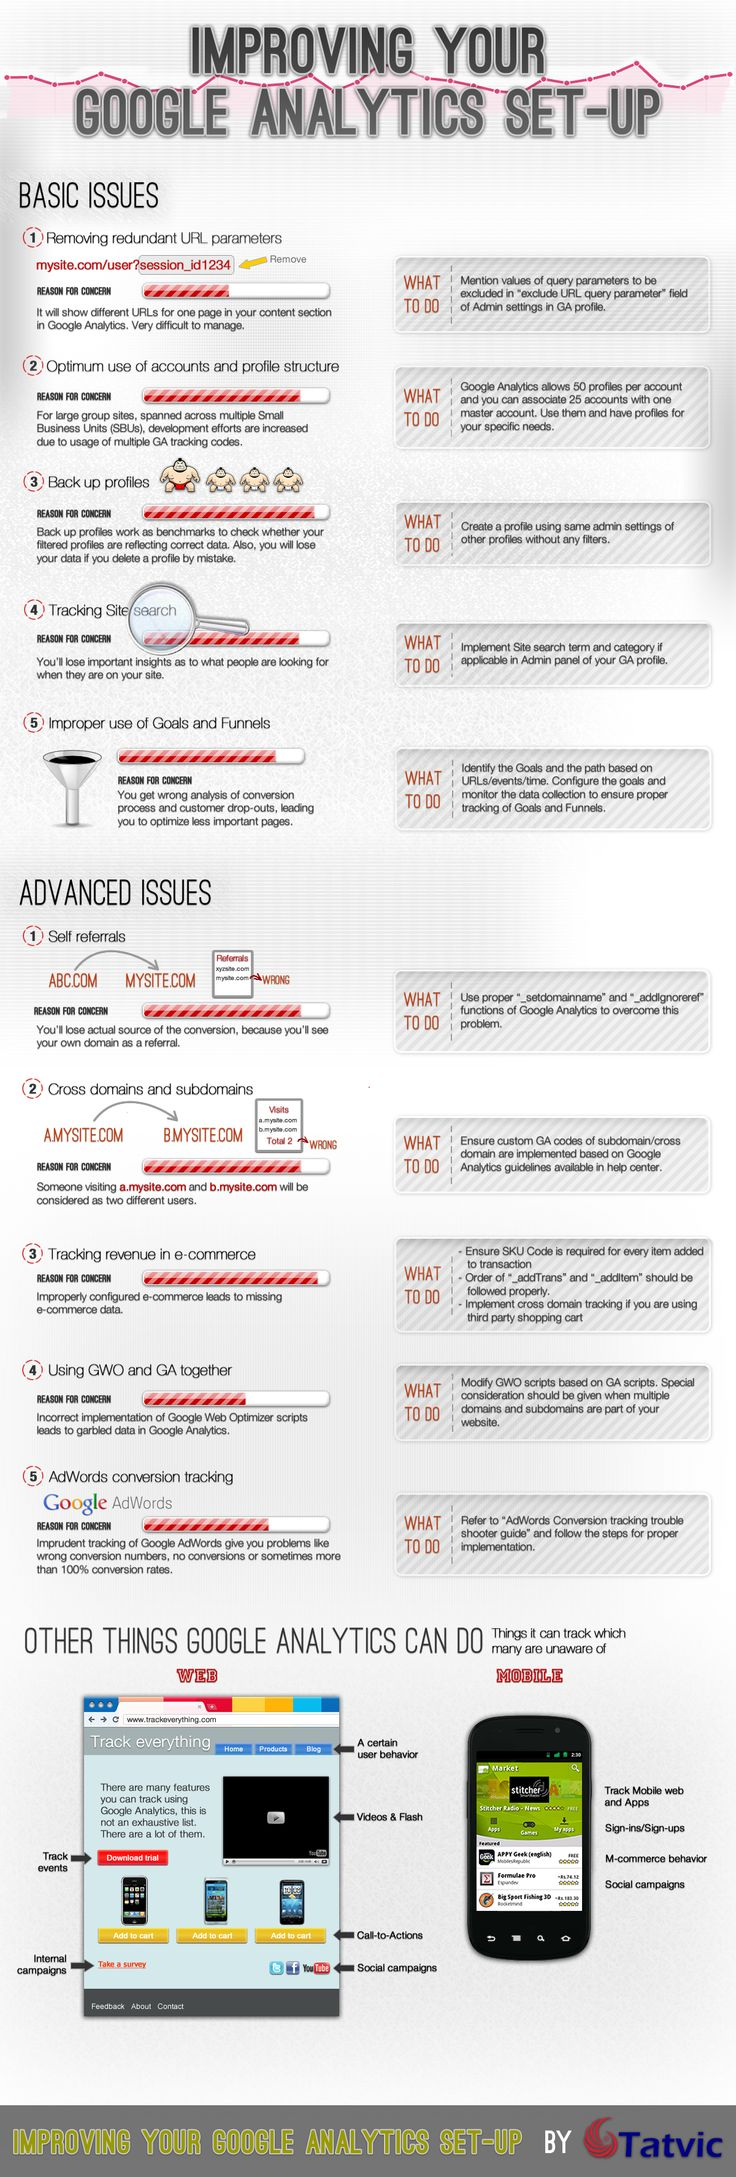 Improving your Google #Analytics Set-up [Infographic] http://j.mp/I8ei9z #Measure